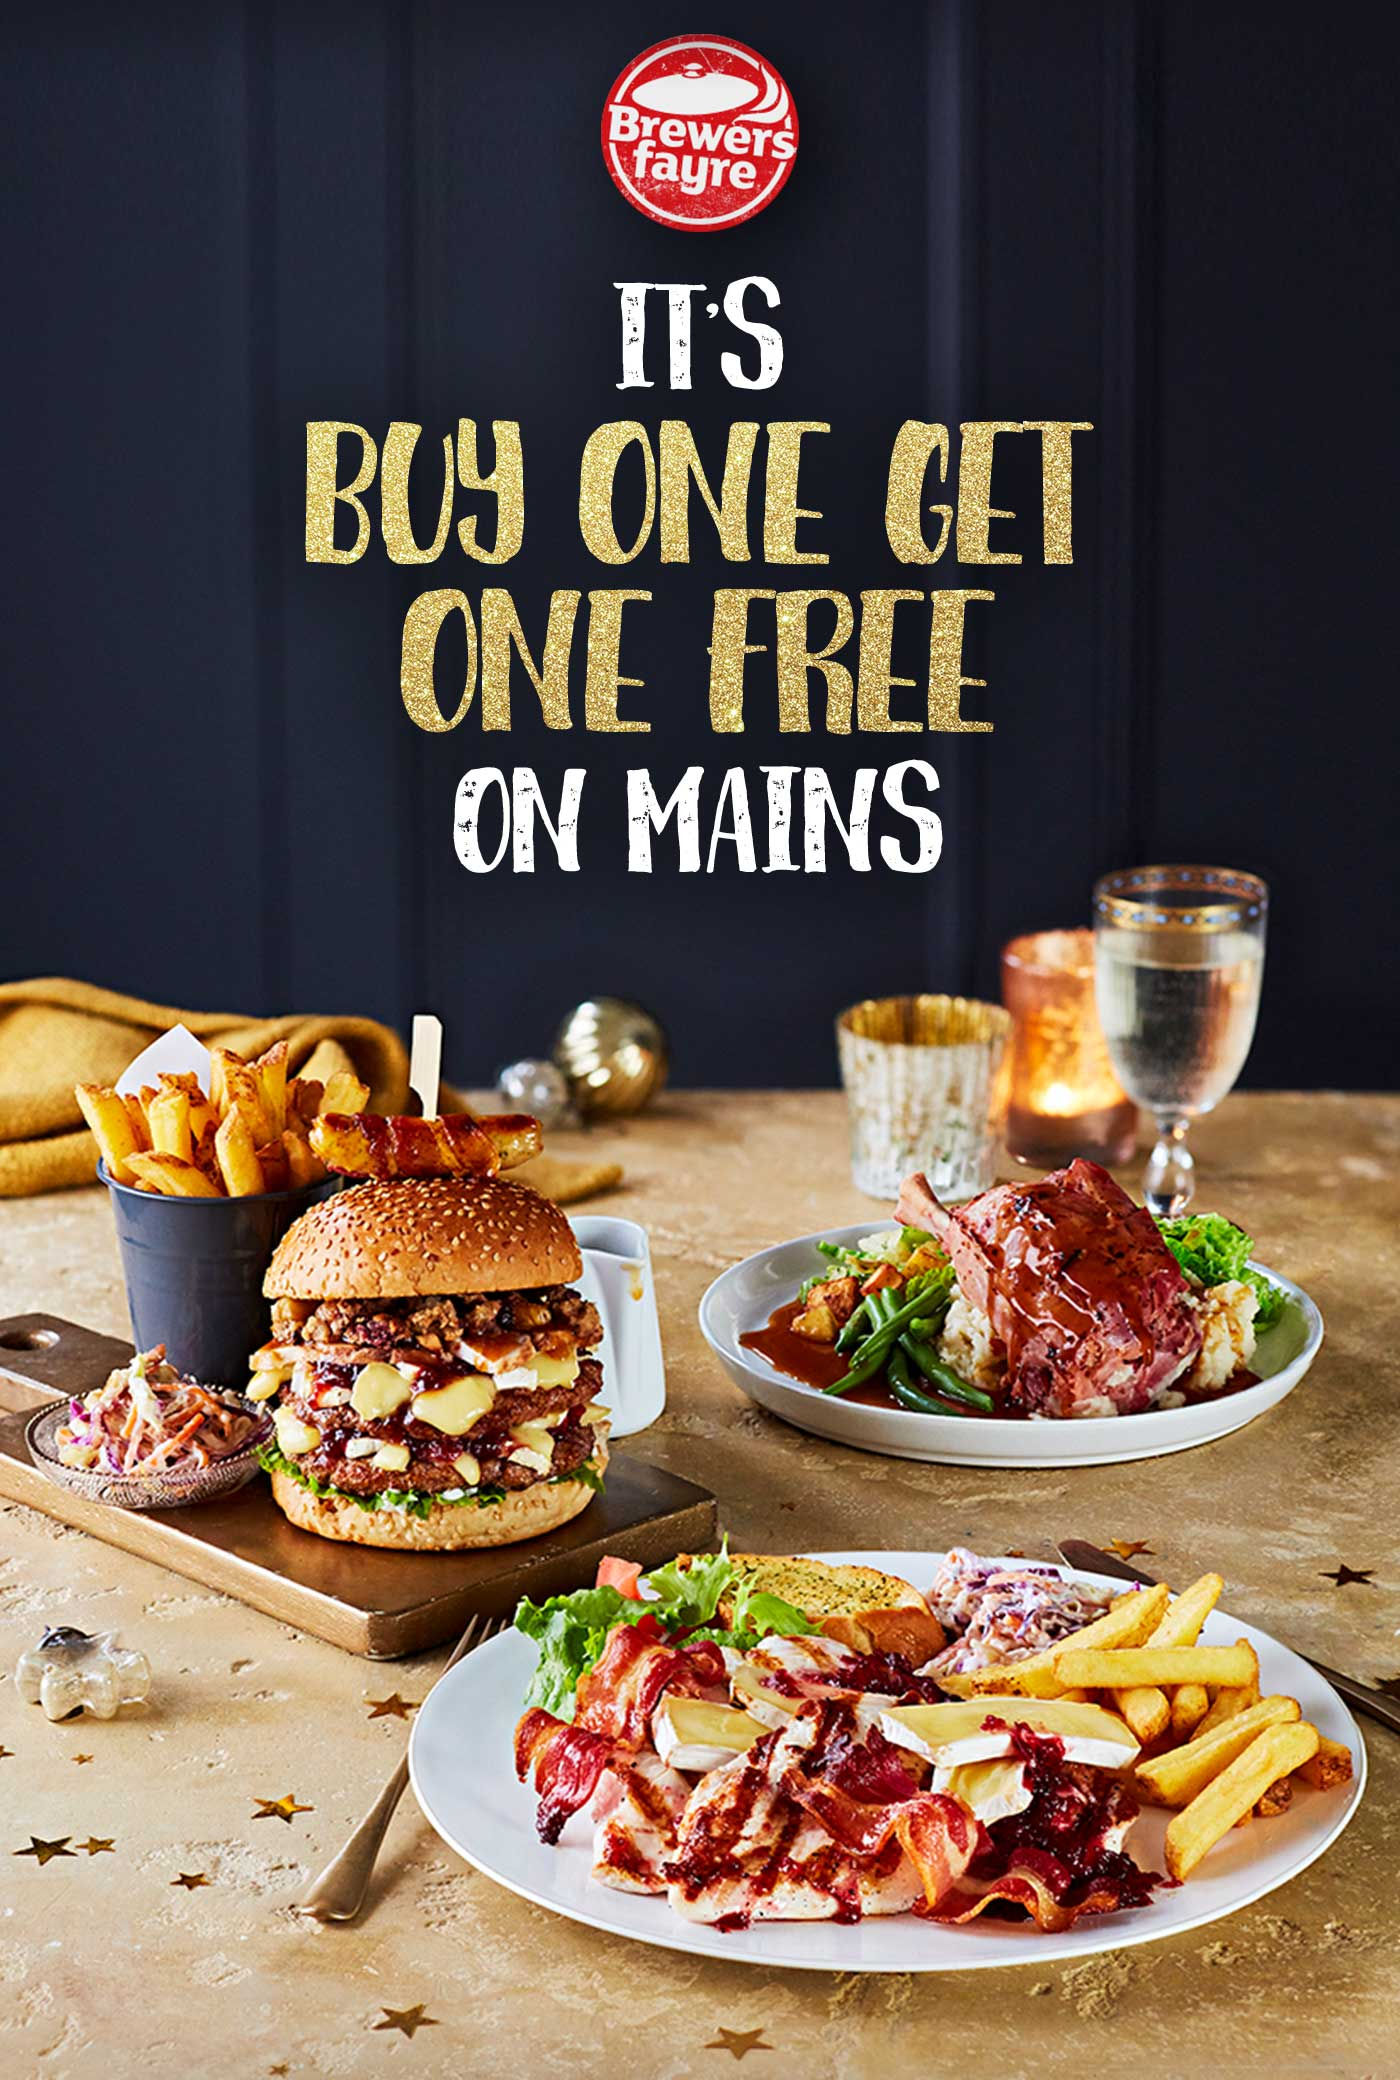 IT'S BUY ONE GET ONE FREE ON MAINS